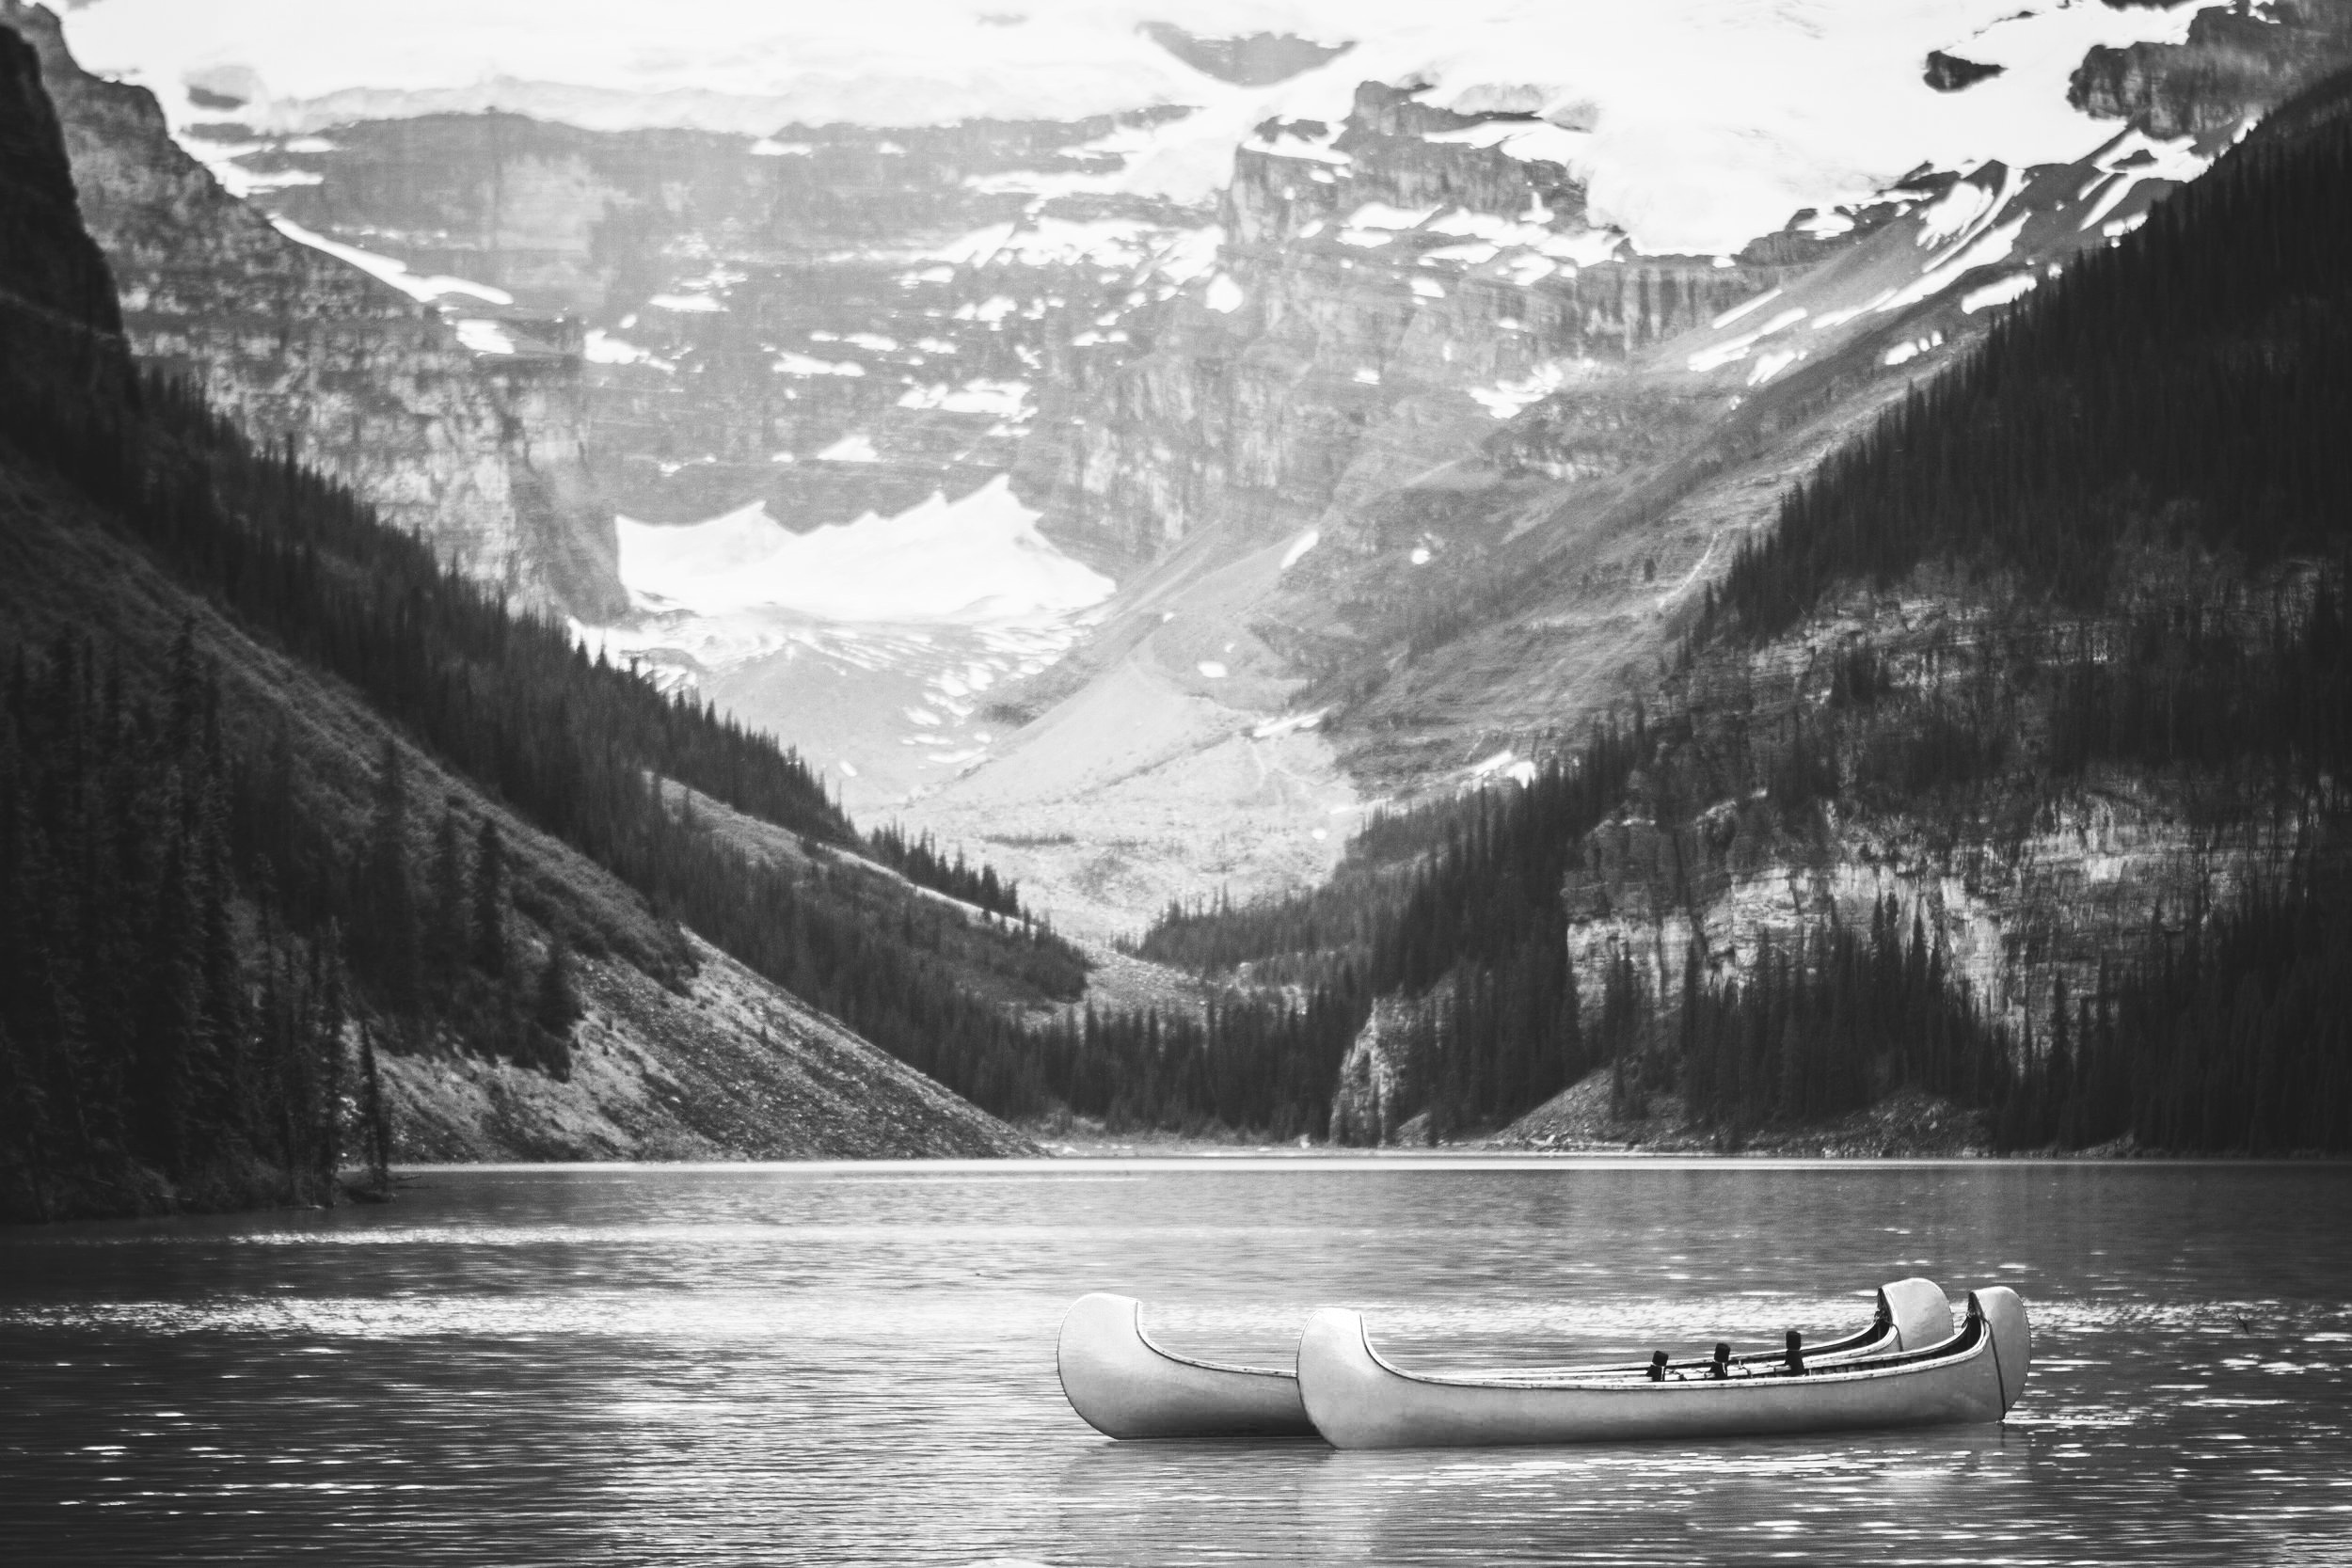 Image of Lake Louise with boats in the water